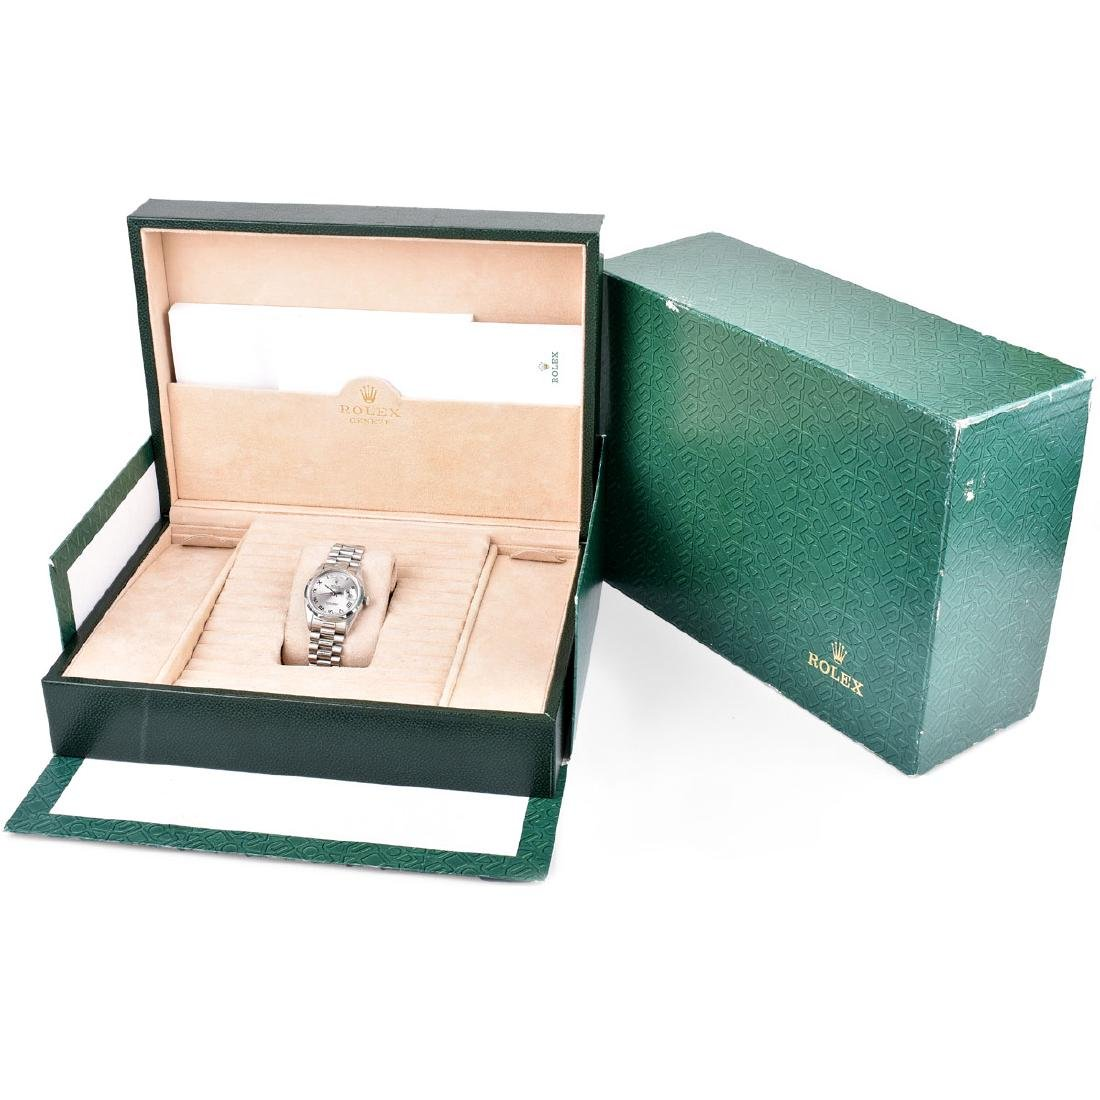 Man's Rolex Platinum President Day-Date Bracelet Watch